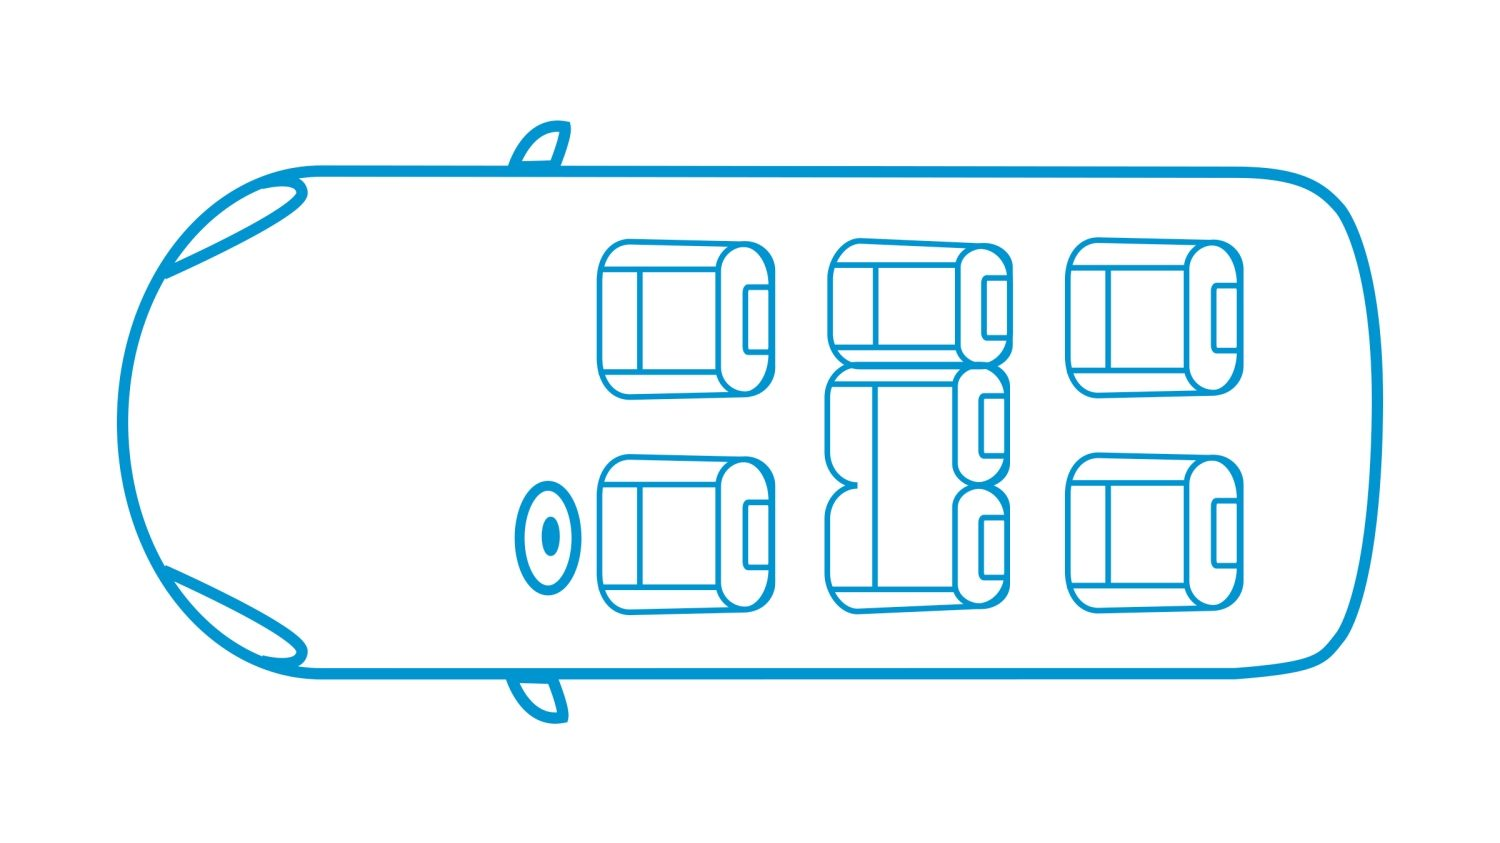 New Nissan e-NV200 EVALIA 7 seats configuration icon